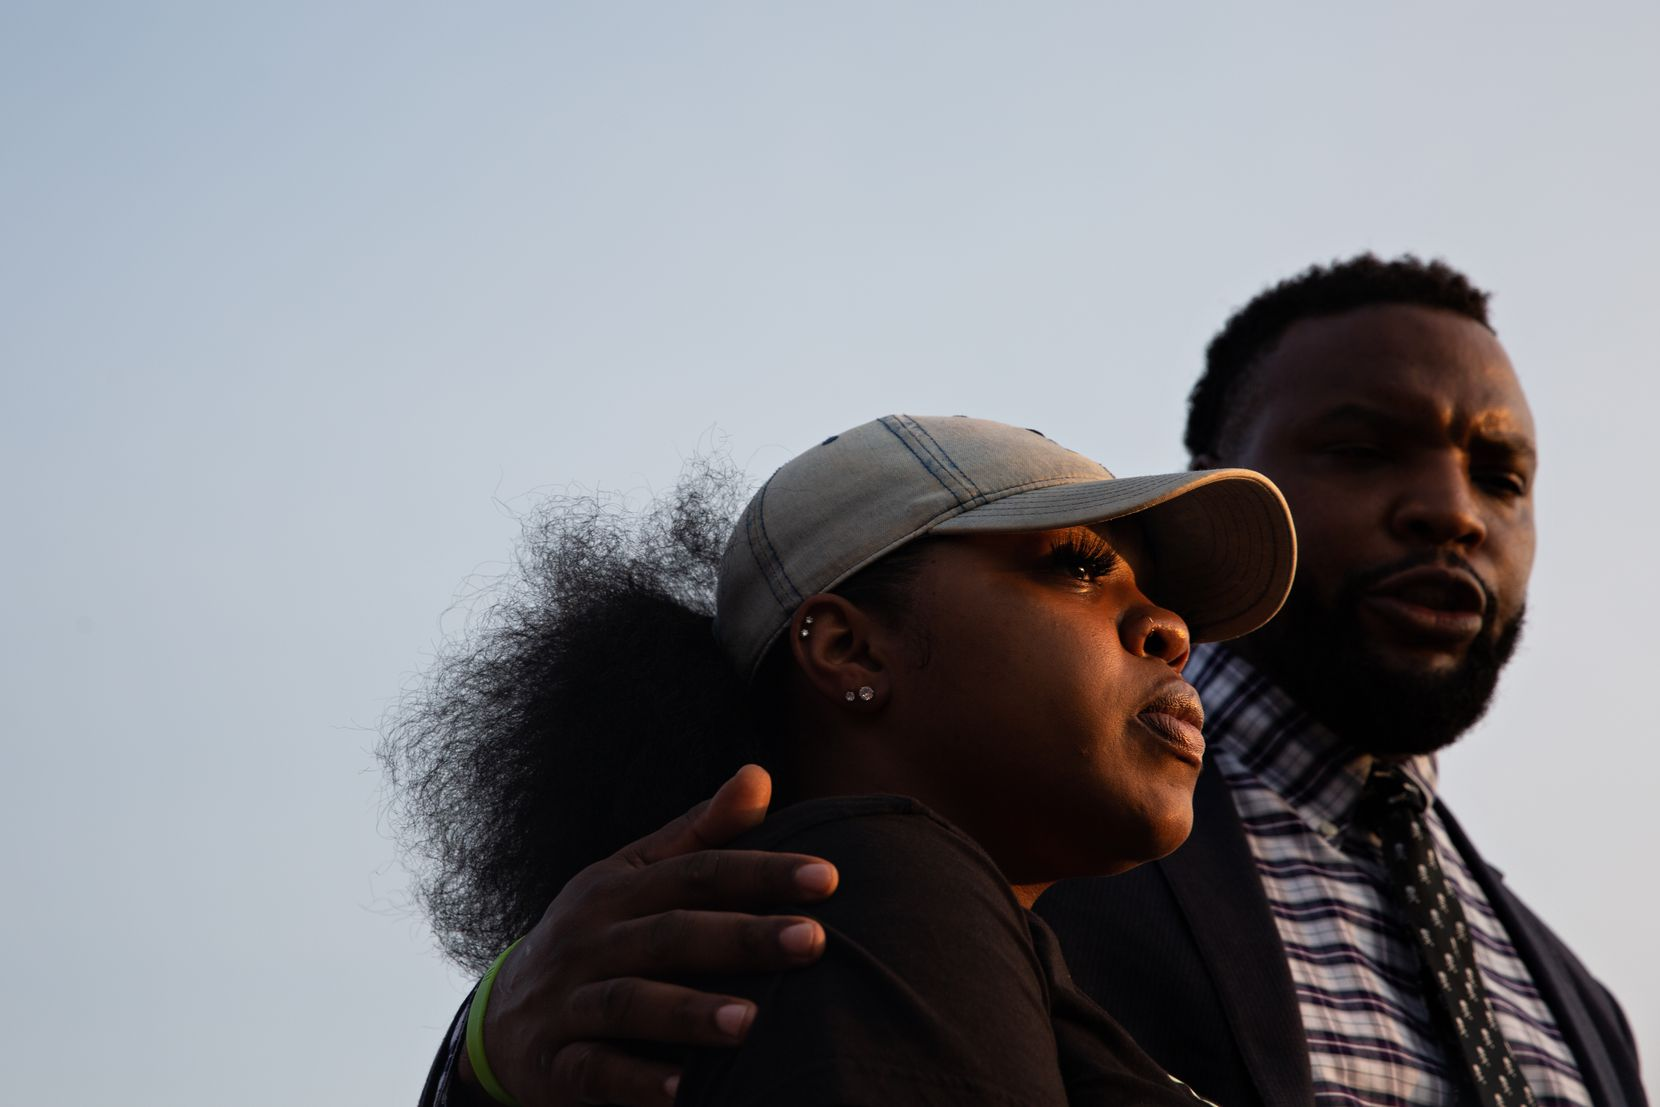 LaChay Batts and her family's attorney Lee Merritt speak to the media outside the Collin County Courthouse on Tuesday.